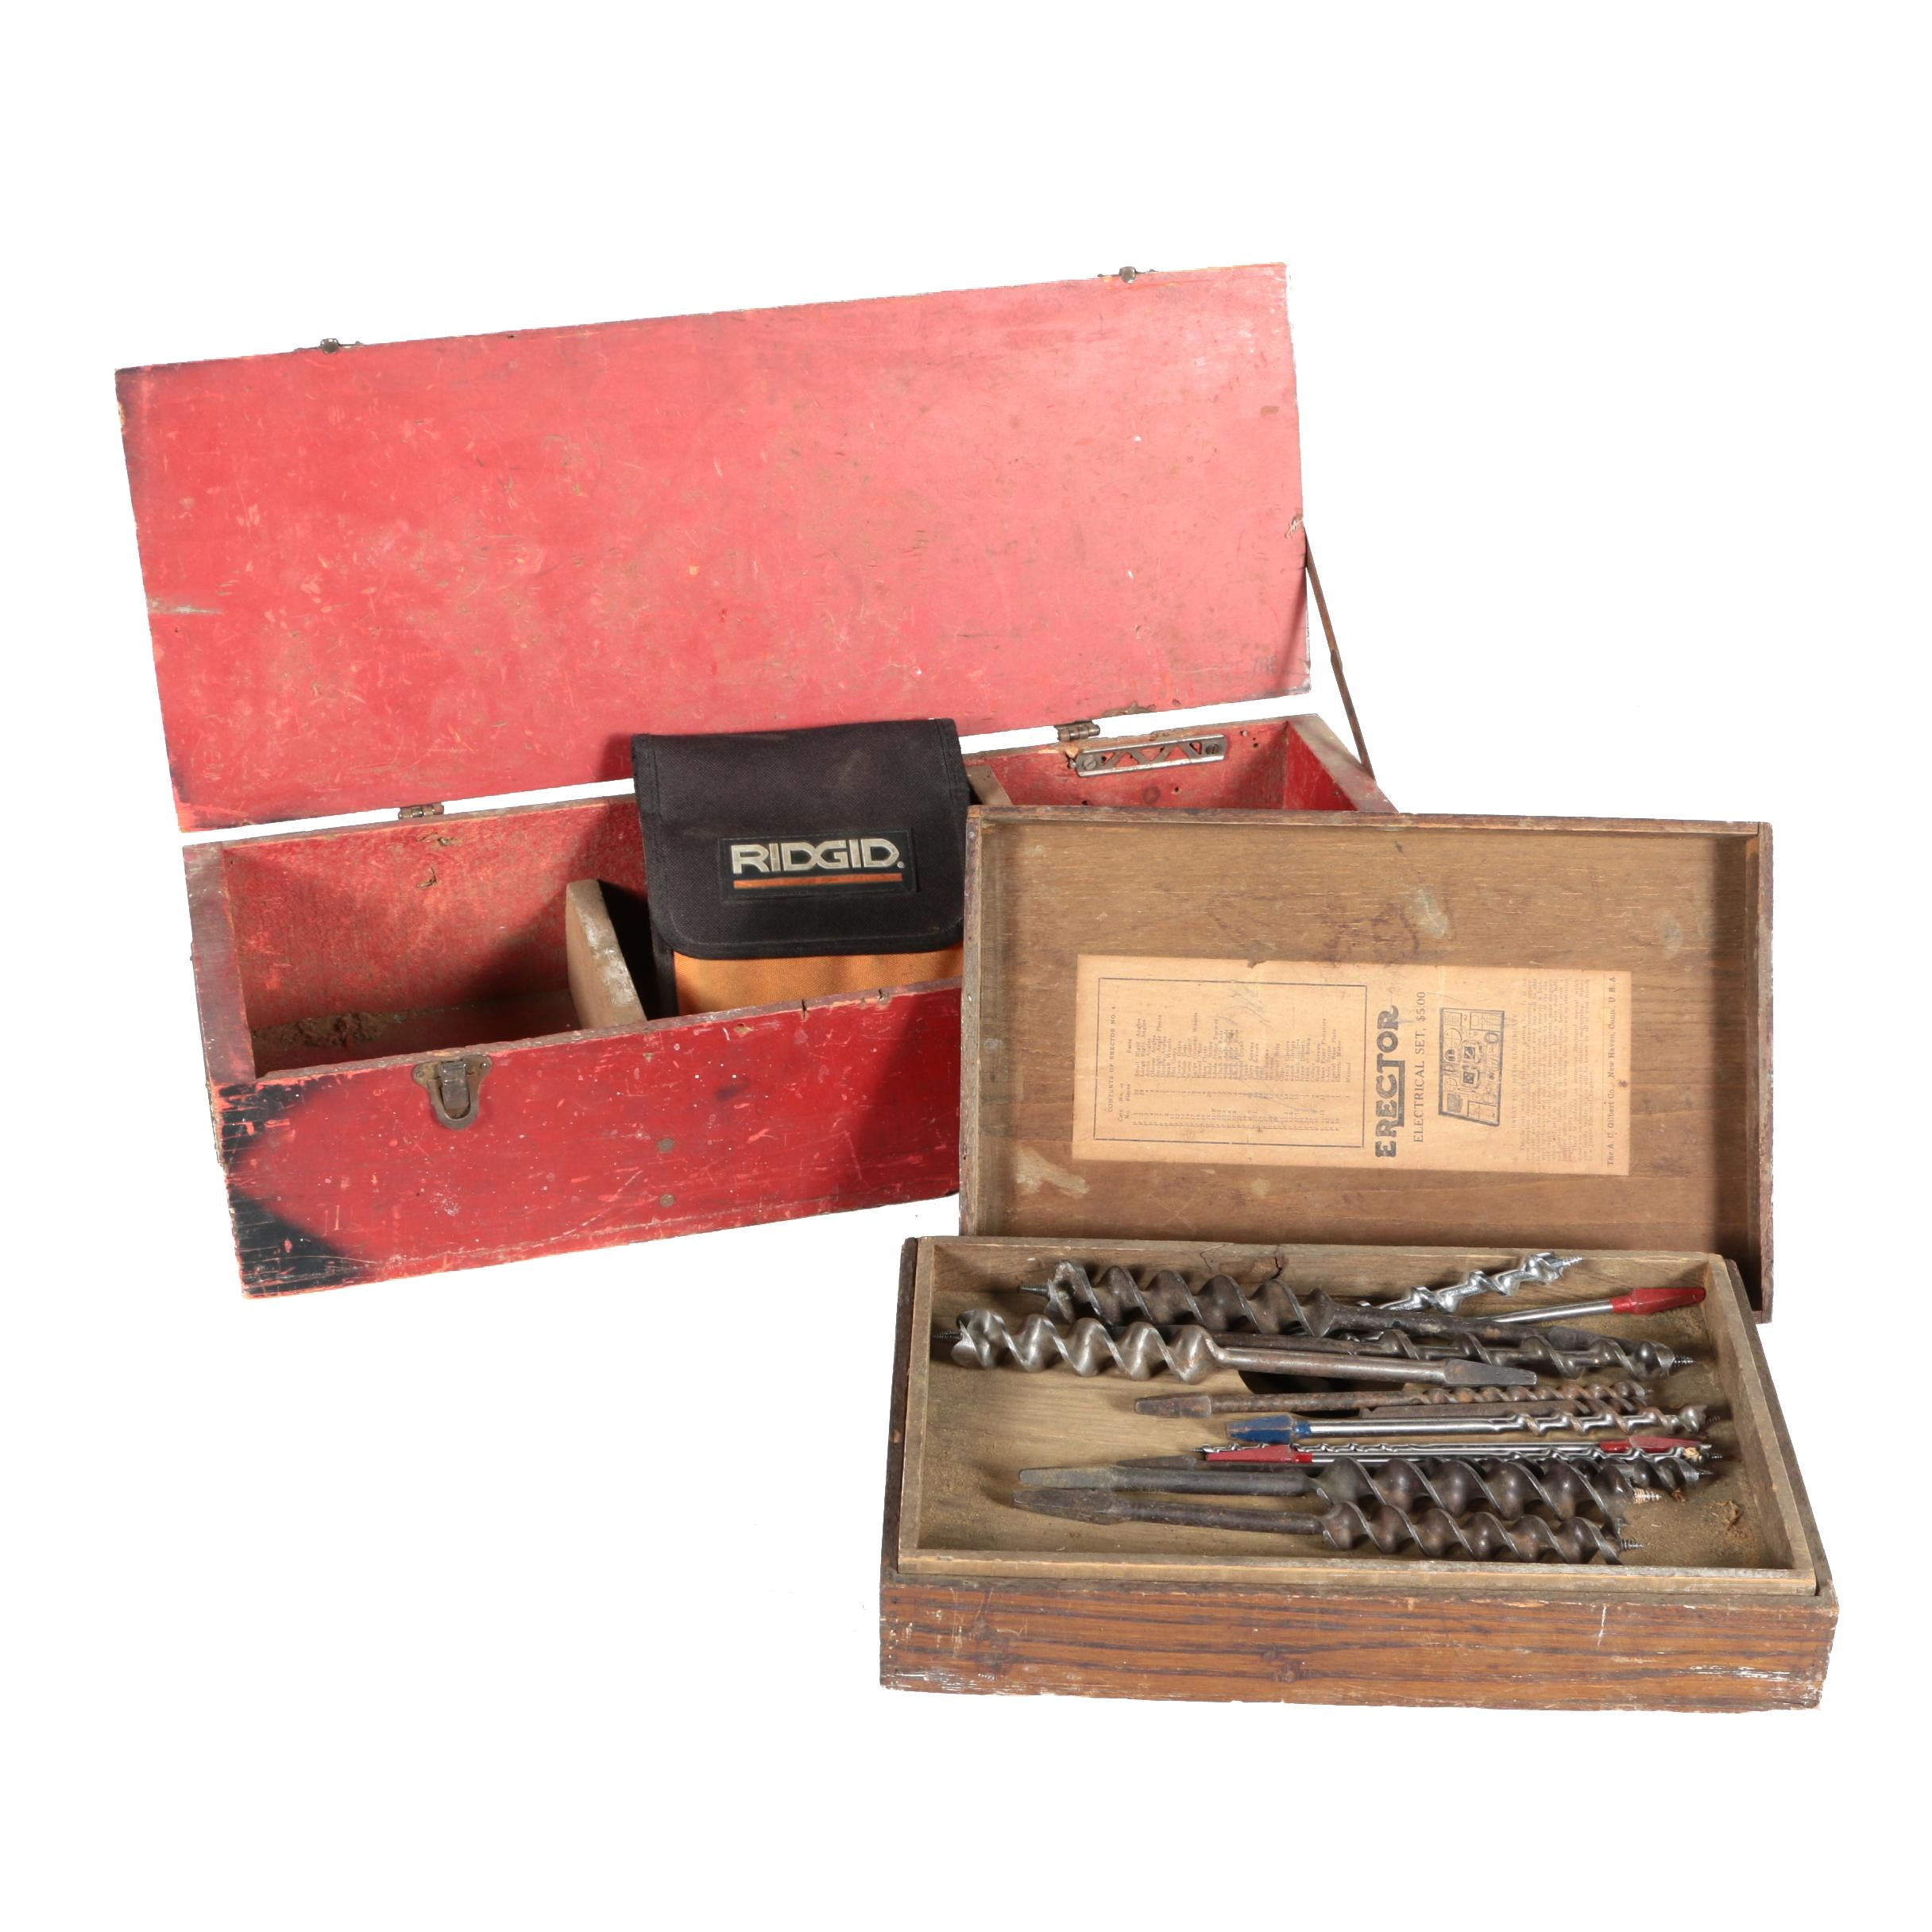 Vintage Boxes and Drill Bits Featuring Auger Bits